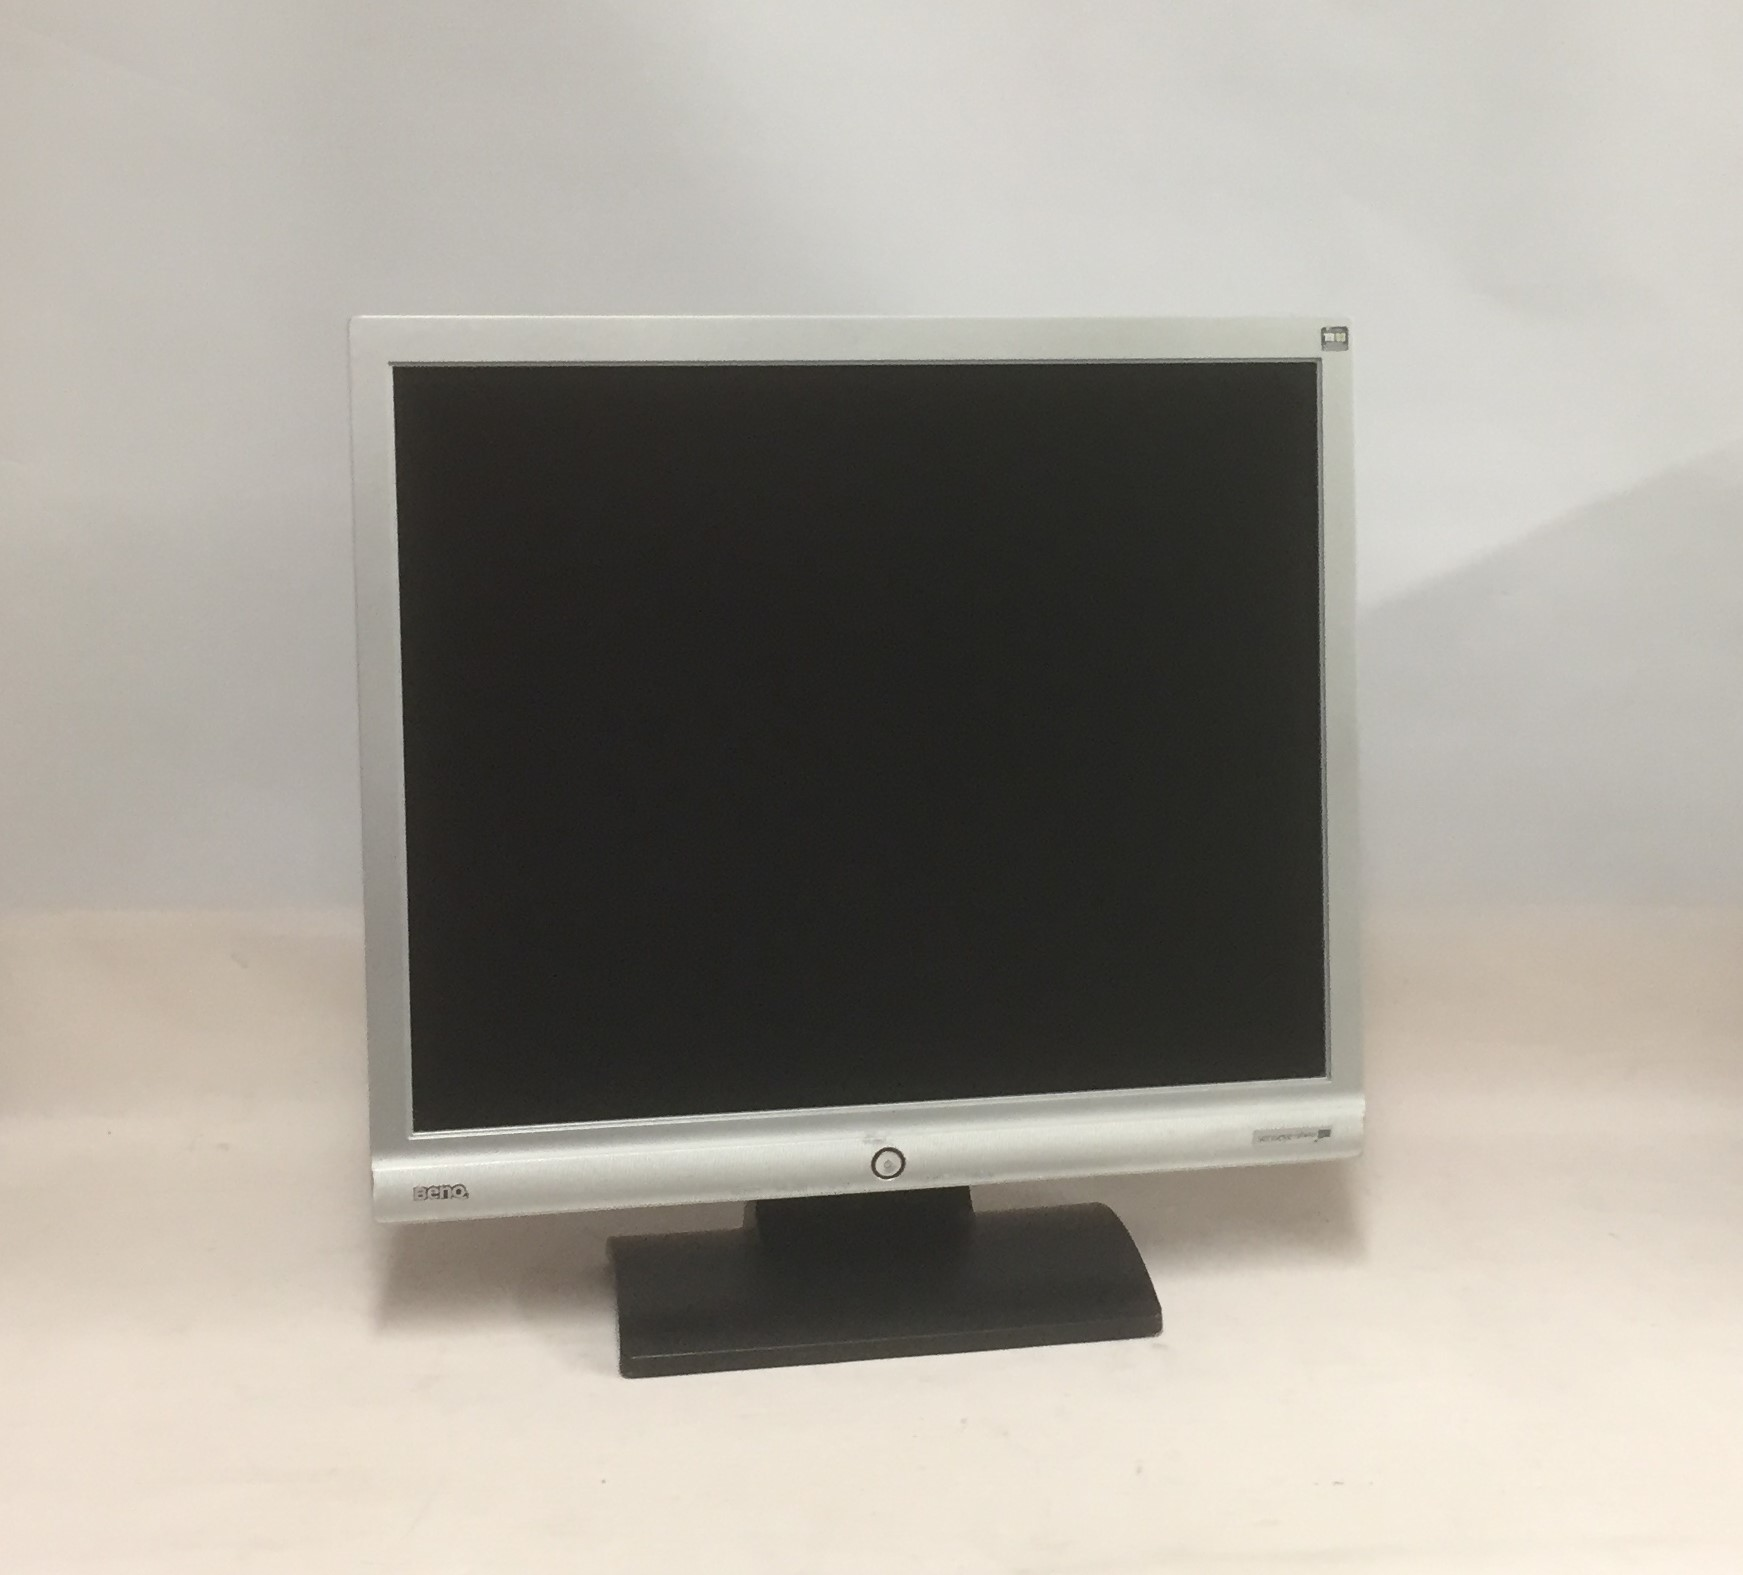 BENQ G700AD LCD MONITOR DRIVERS FOR WINDOWS 10